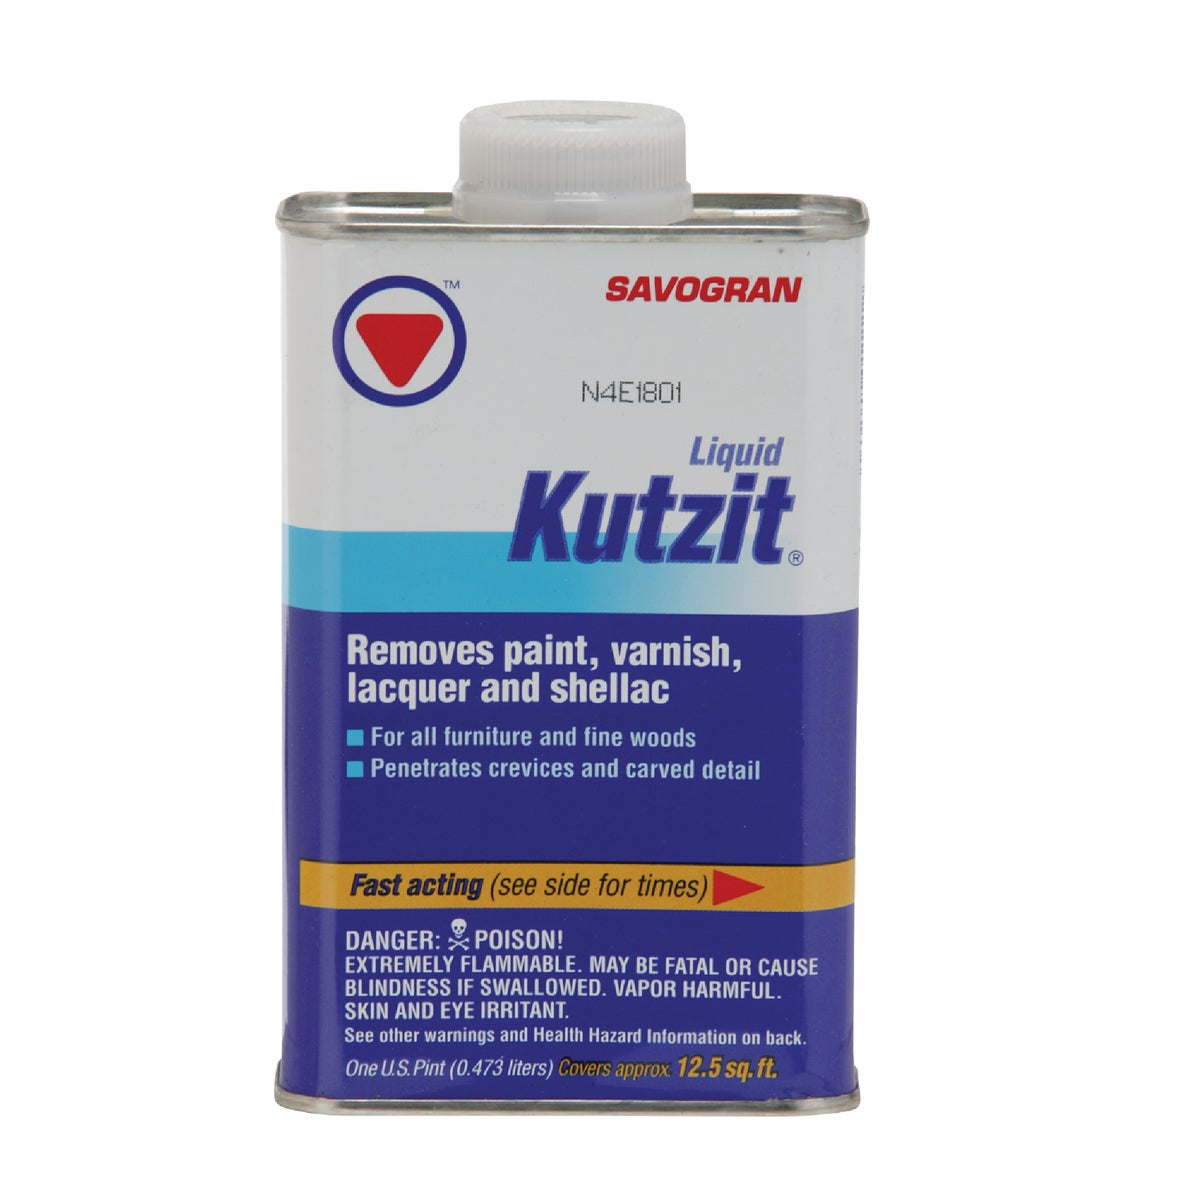 PT KUTZIT REMOVER - 1111 by Savogran Company